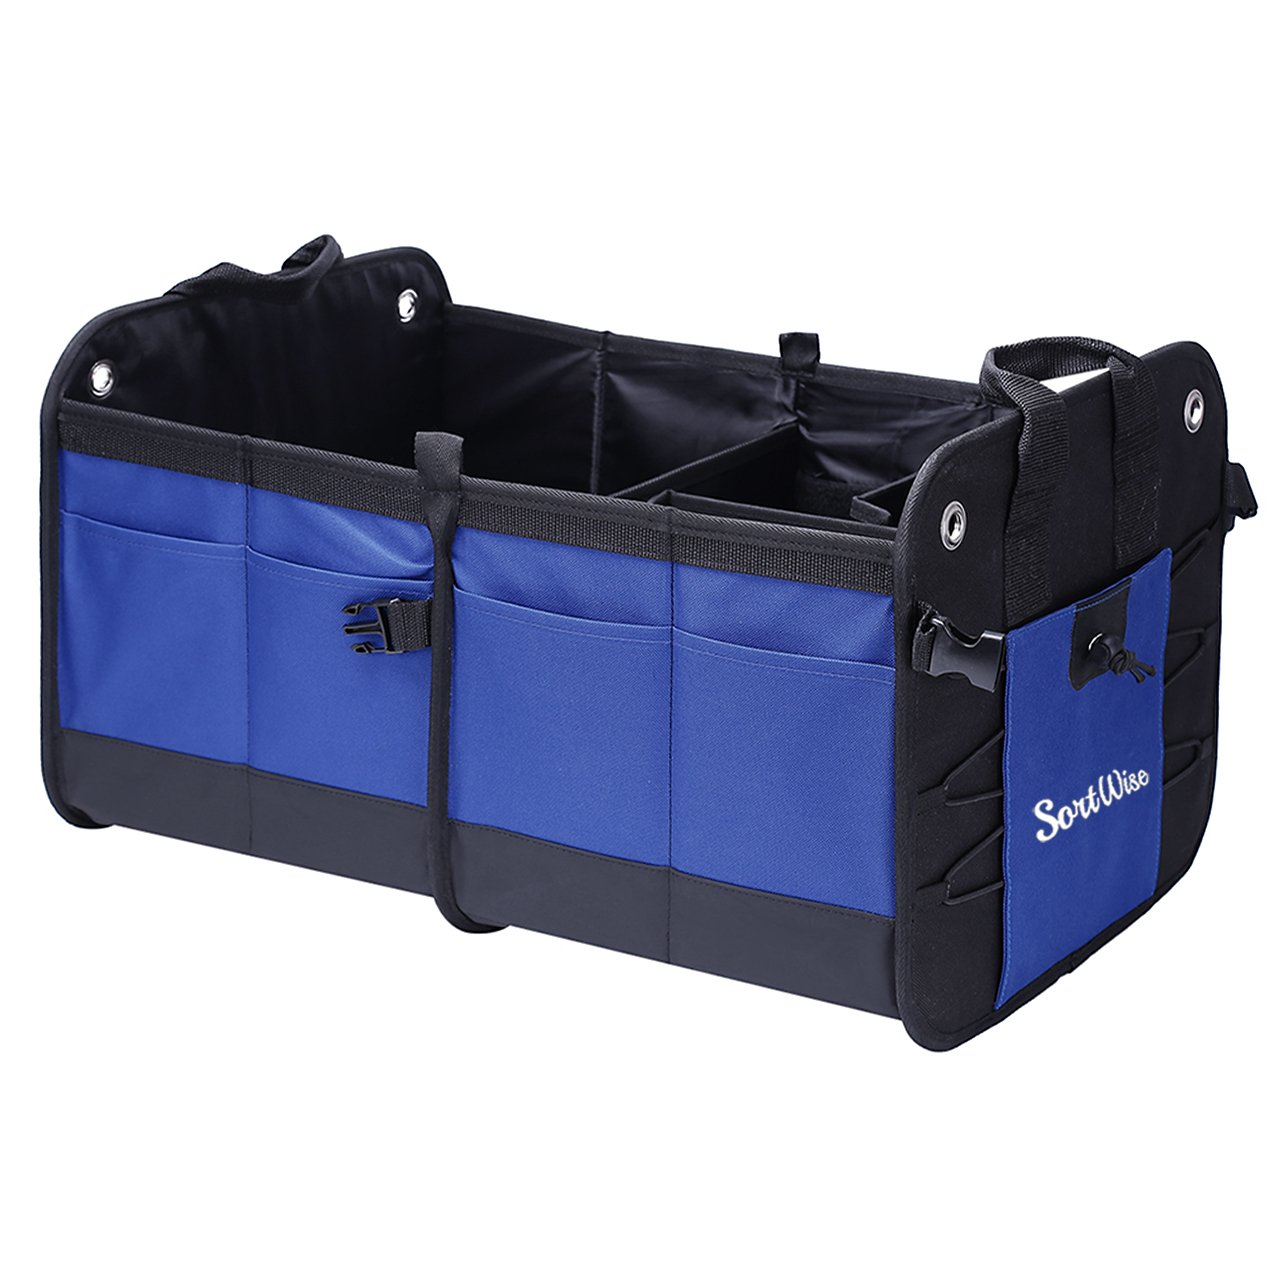 SortWise ® Collapsible Car Trunk Organizer, Super Strong & Durable Travel Storage Container Cargo Storage Box for Car, Truck, SUV, Van, Home, Groceries, Waterproof w/ 2 Sub-dividers